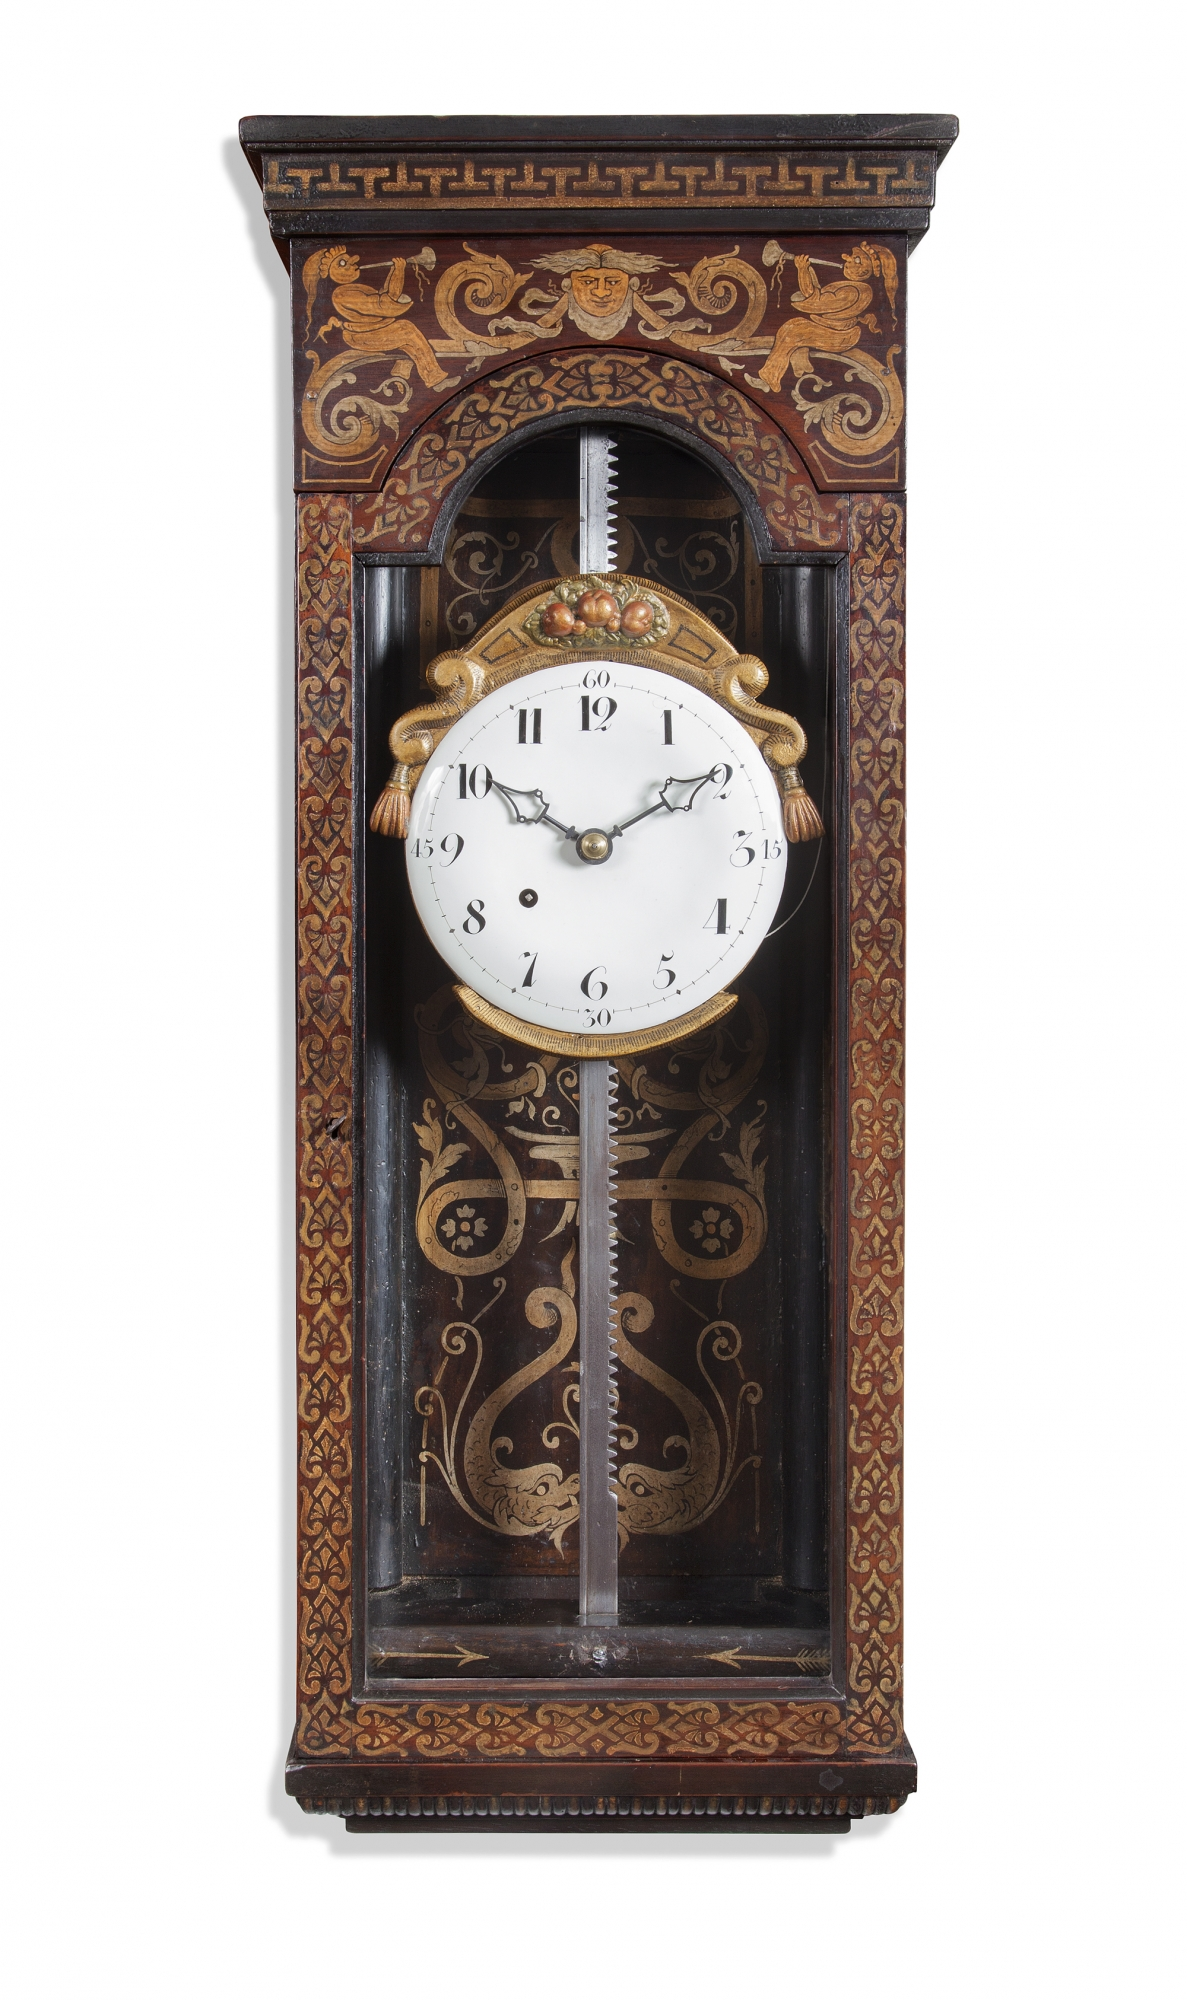 A rare and decorative mid european painted wood striking rack wall a rare and decorative mid european painted wood striking rack wall clock amipublicfo Image collections